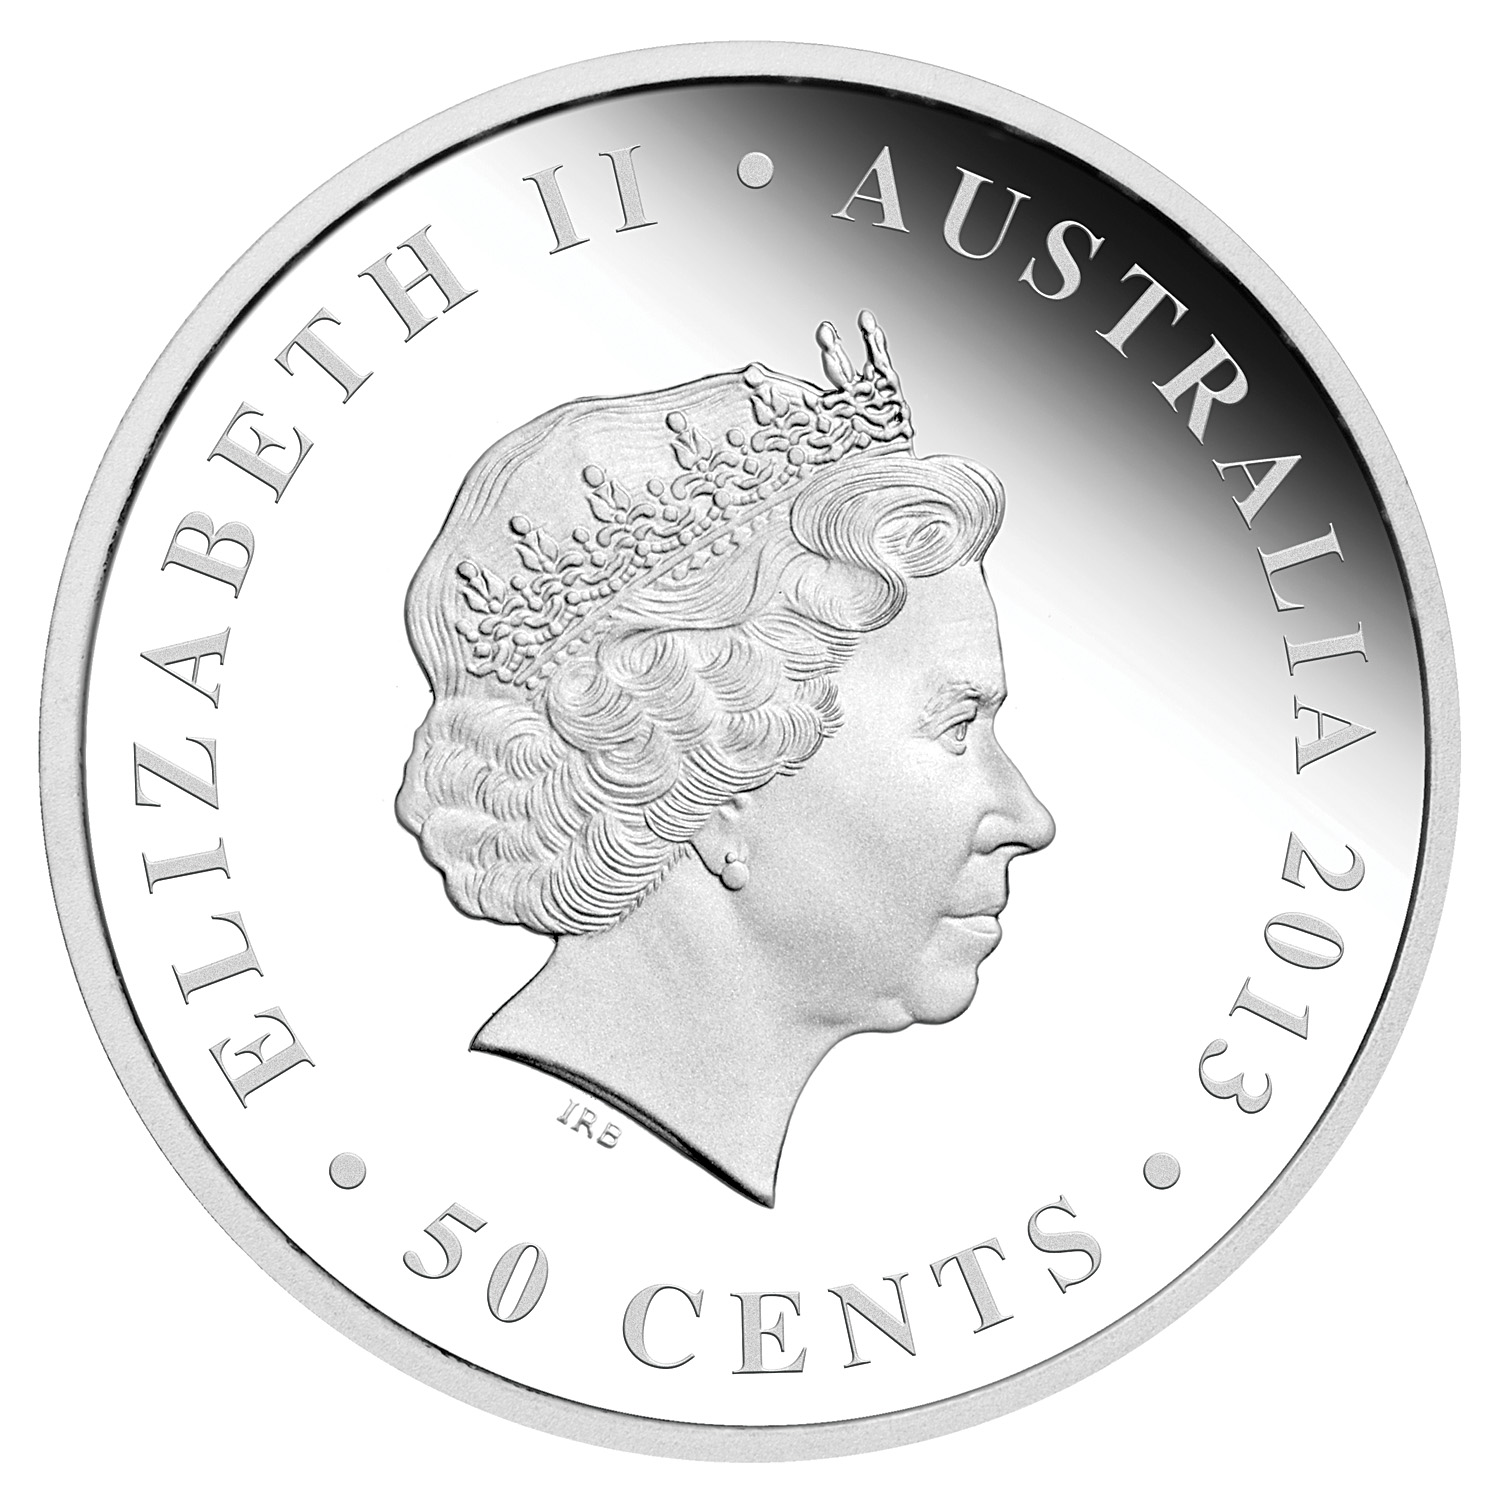 2013 1/2 oz Silver Proof Christmas Coin